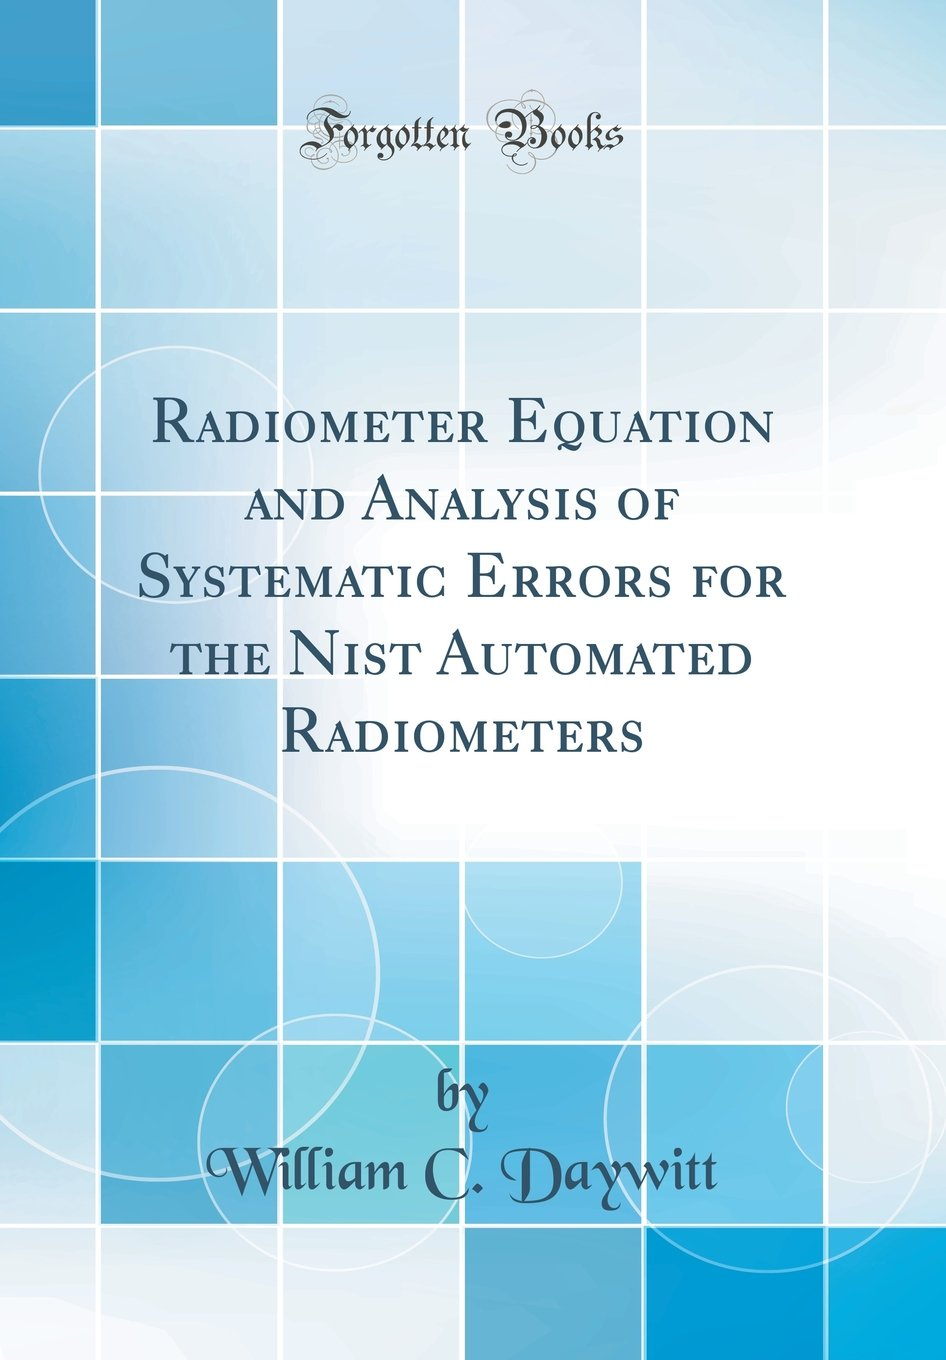 Radiometer Equation and Analysis of Systematic Errors for the Nist  Automated Radiometers (Classic Reprint): William C Daywitt: 9780265848975:  Amazon.com: ...